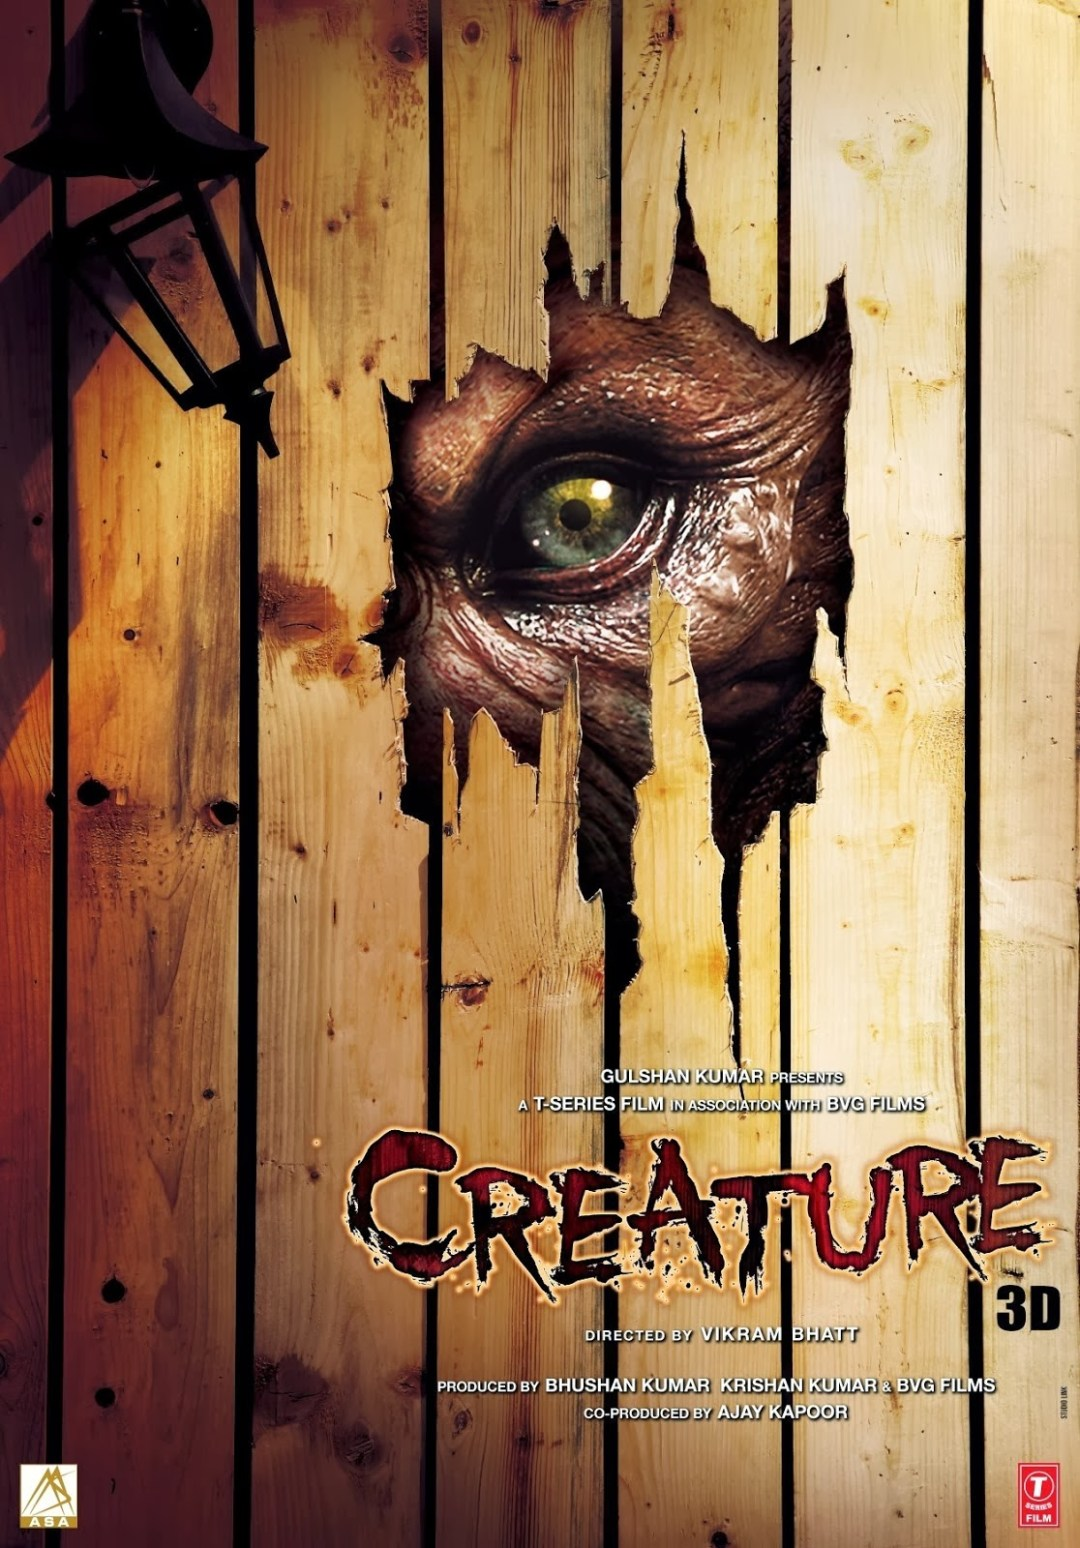 Creatures poster is copied from Jeepers Creepers